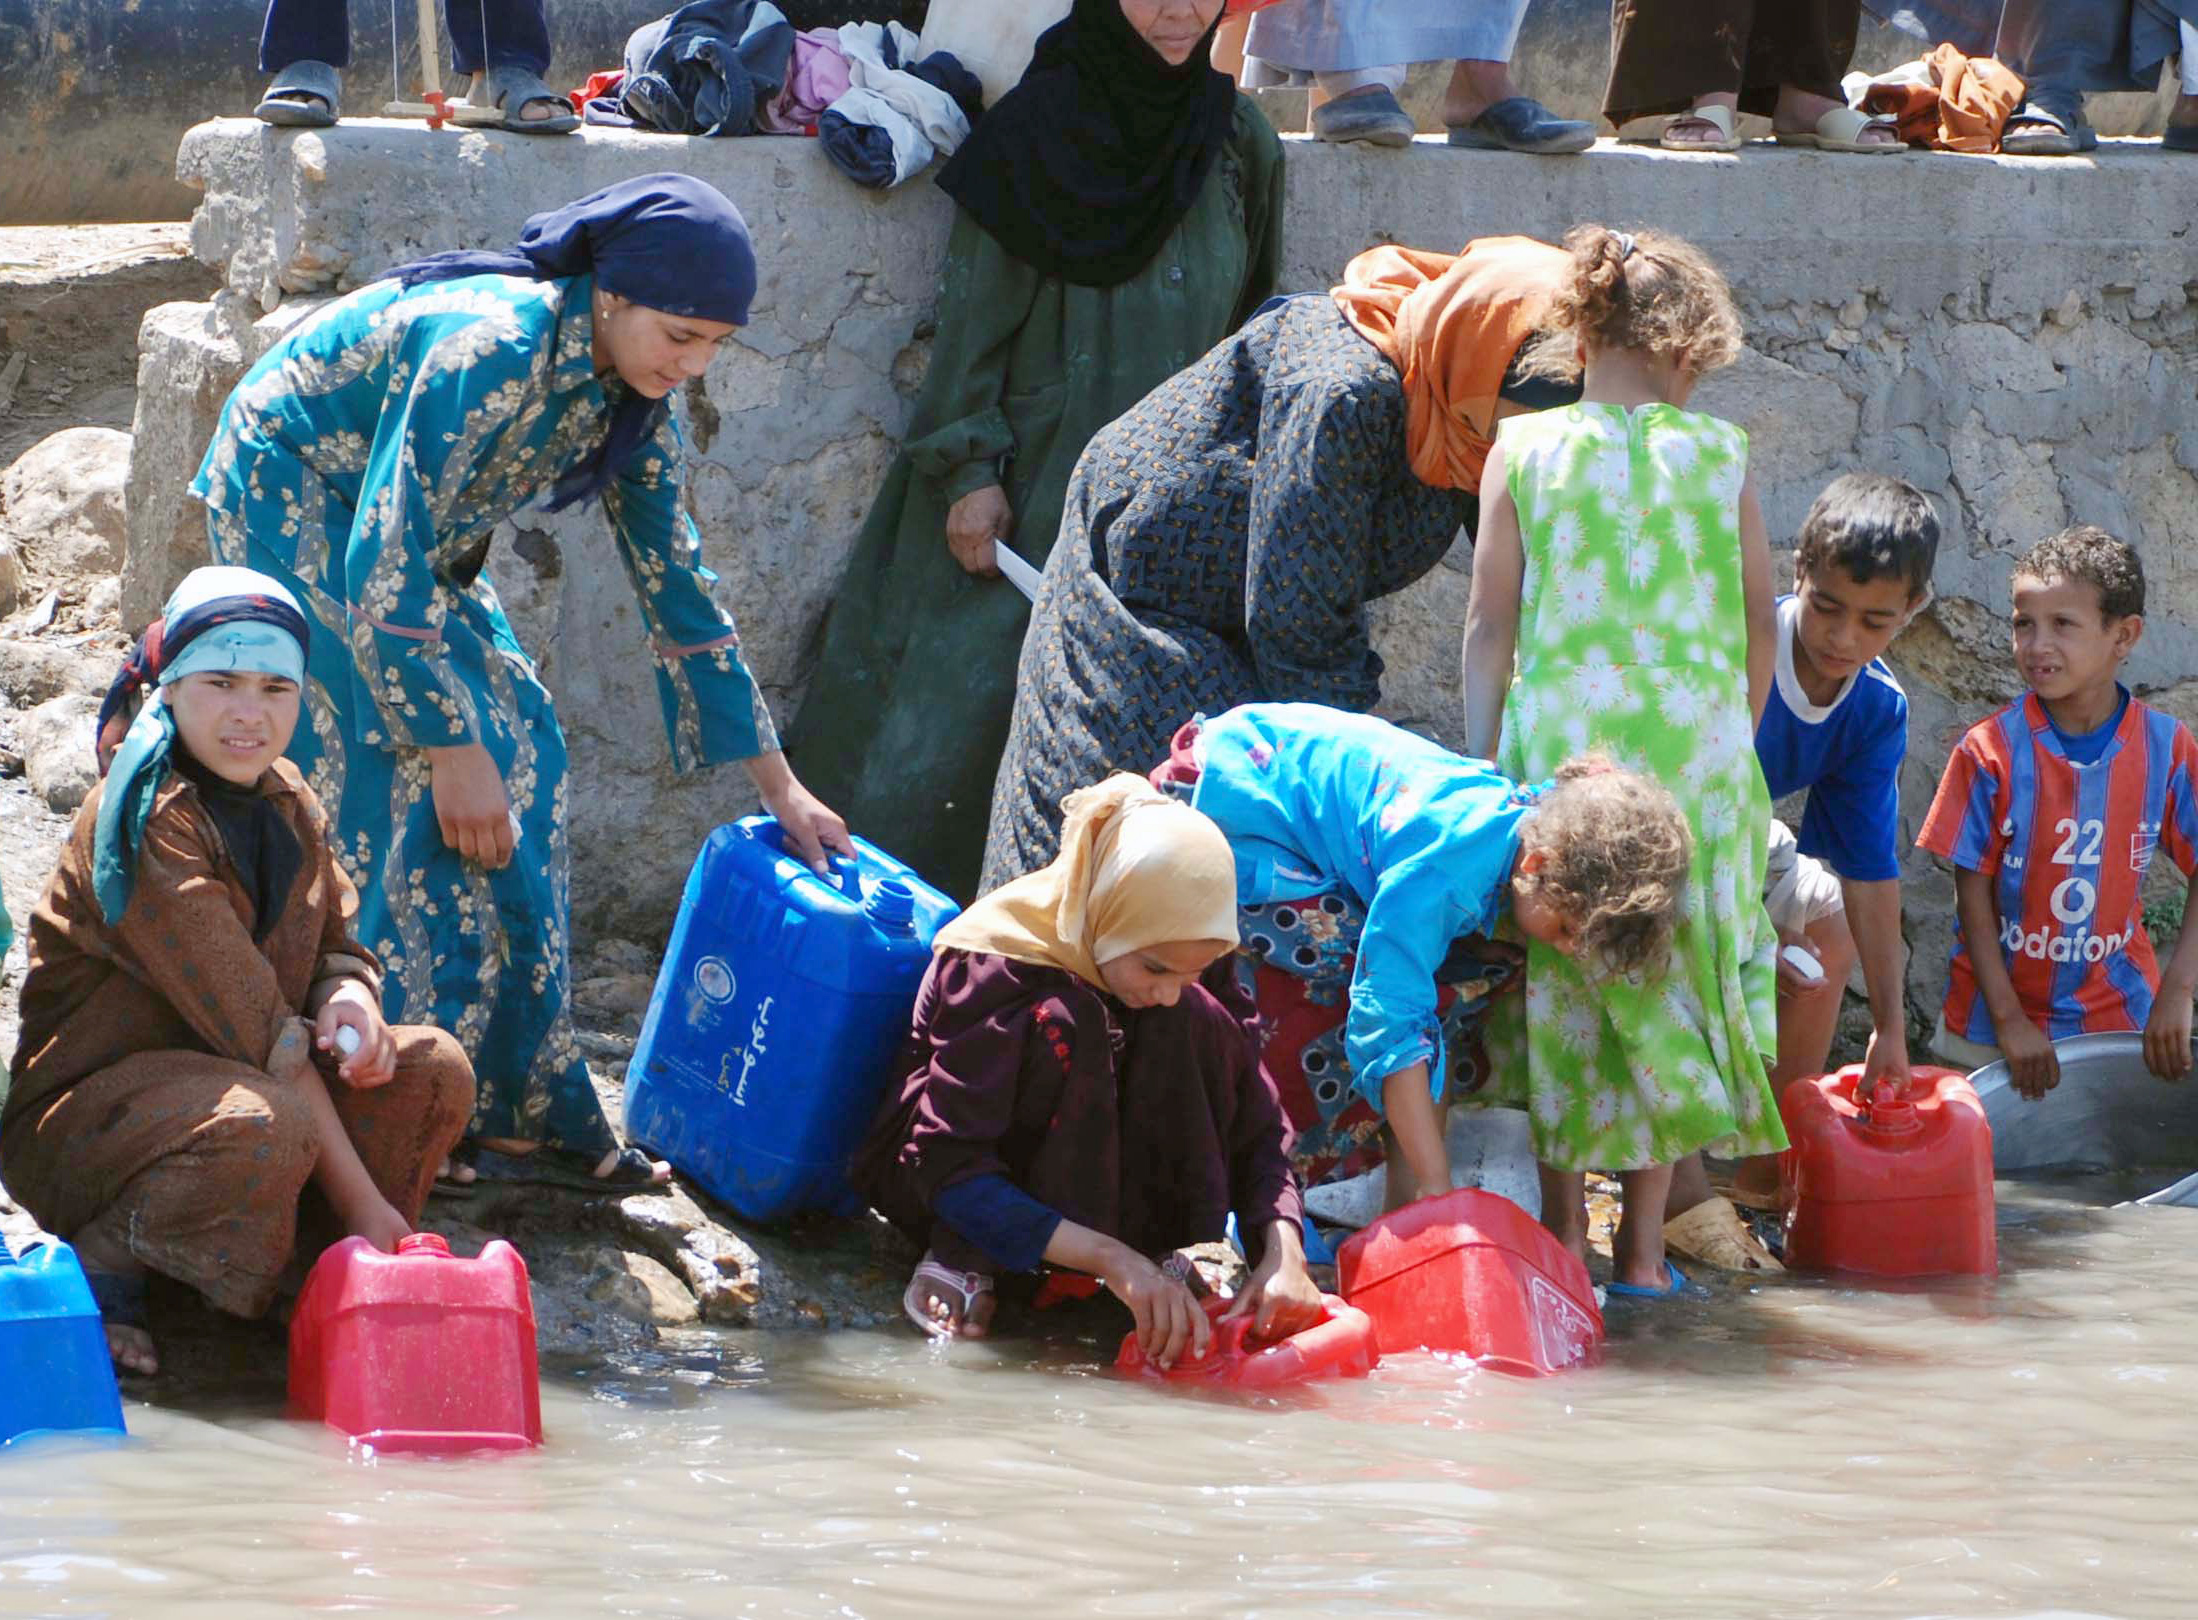 Egyptians fetching water. Water scarcity has already become a fact of daily life for Egyptians